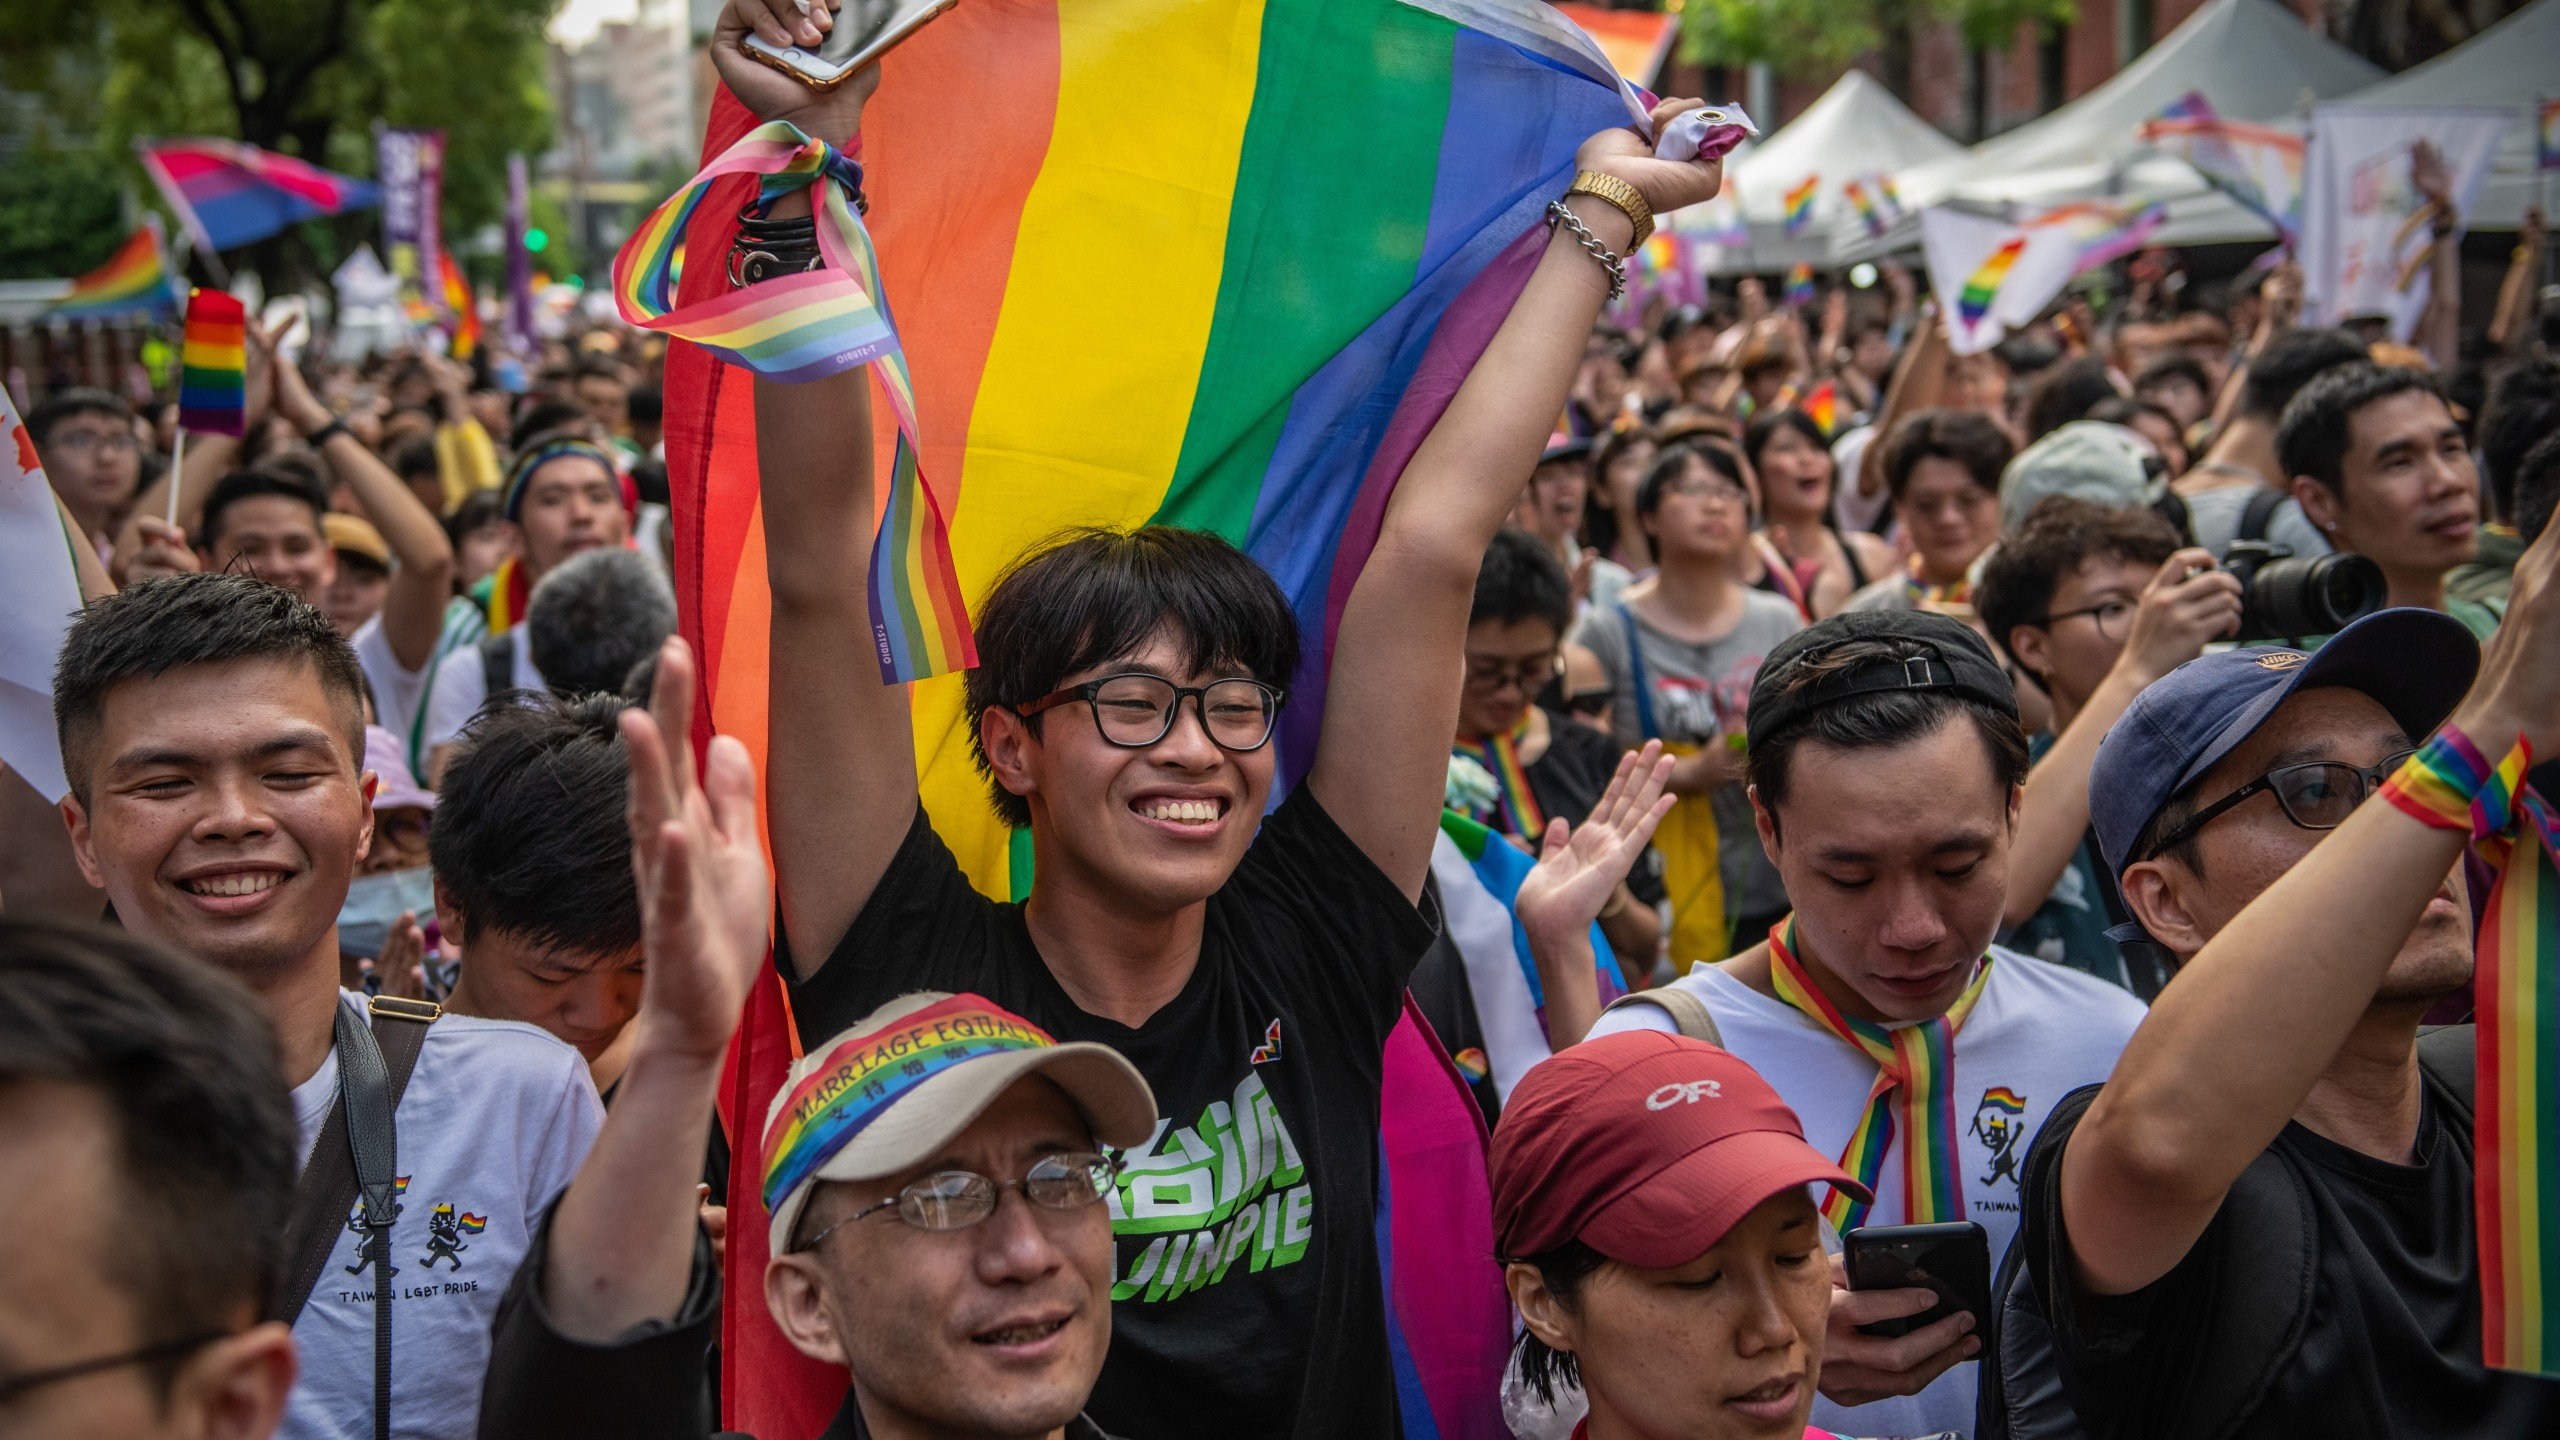 People celebrate after Taiwan's parliament voted to legalize same-sex marriage on May 17, 2019, in Taipei, Taiwan. (Credit: Carl Court/Getty Images)